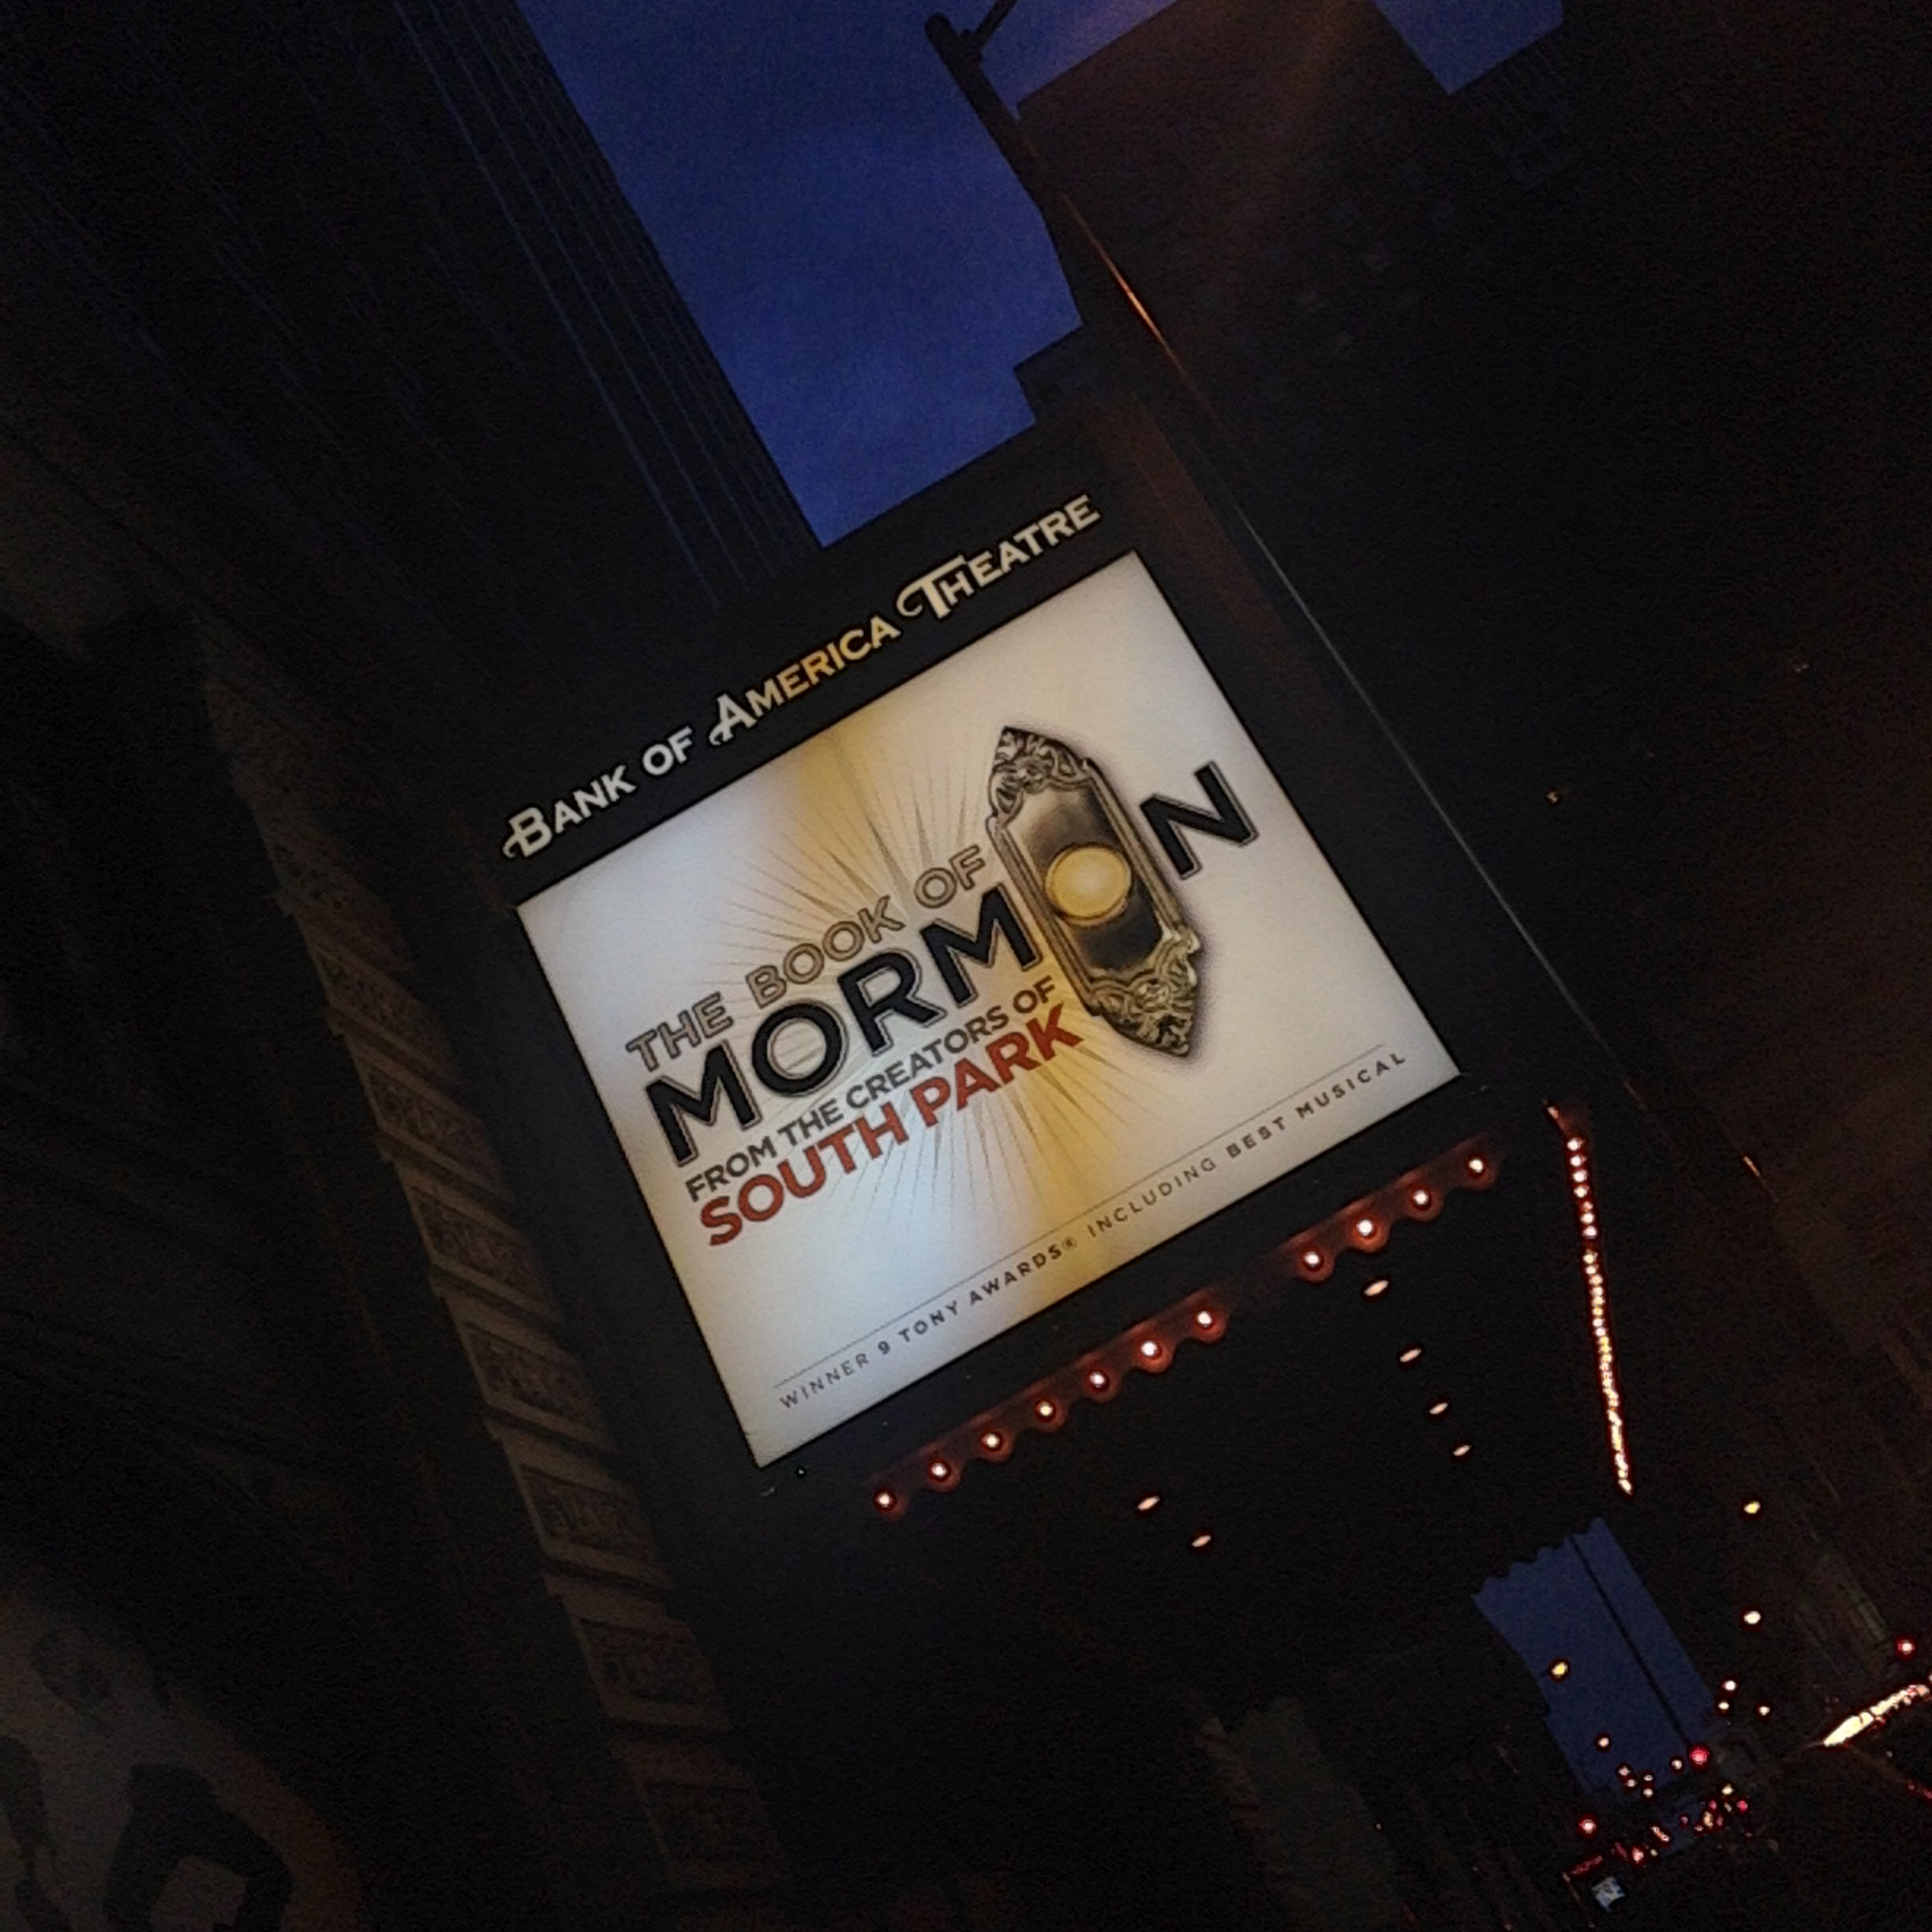 Book of Mormon in Chicago